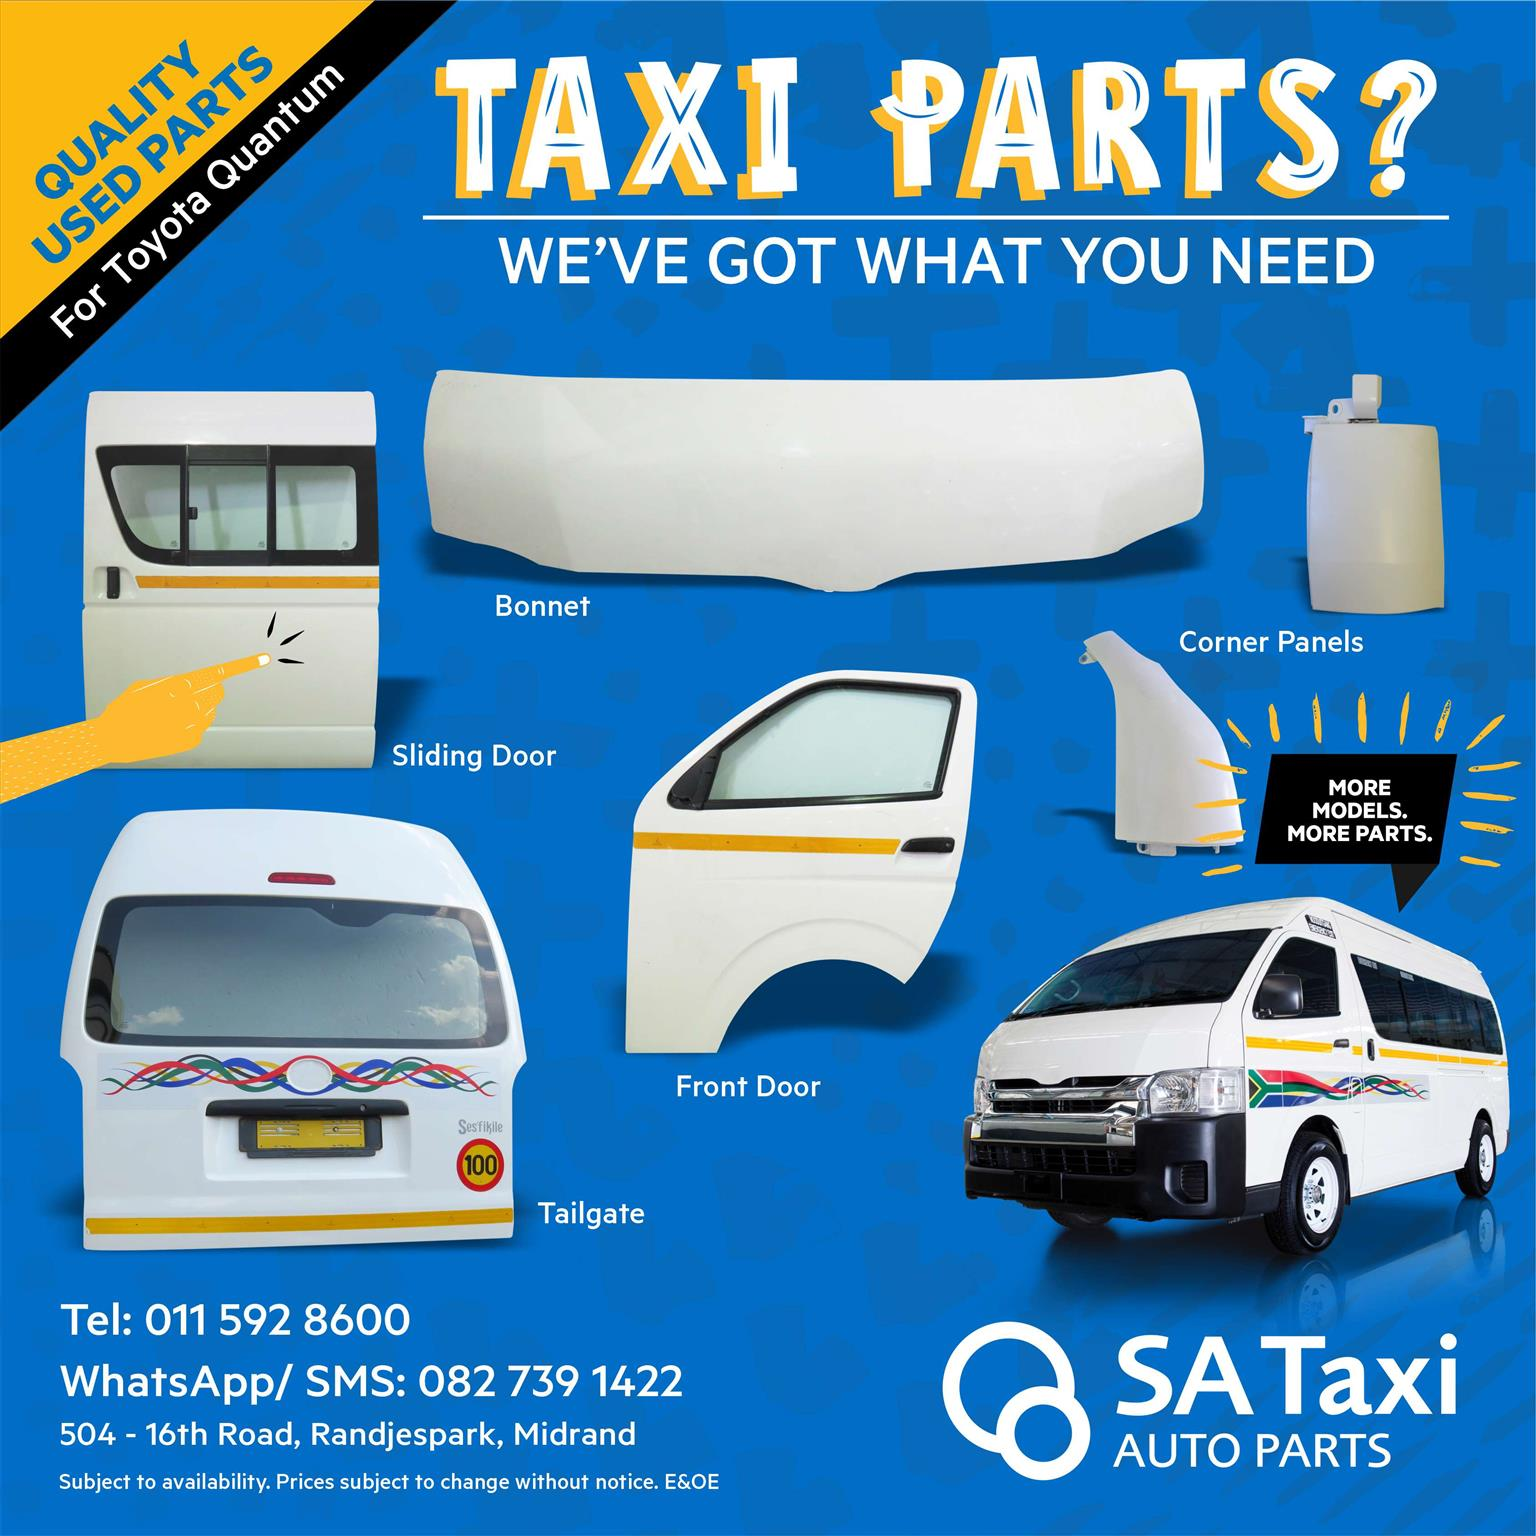 New Brake Pad Set suitable for Nissan NV350 Impendulo - SA Taxi Auto Parts quality spares